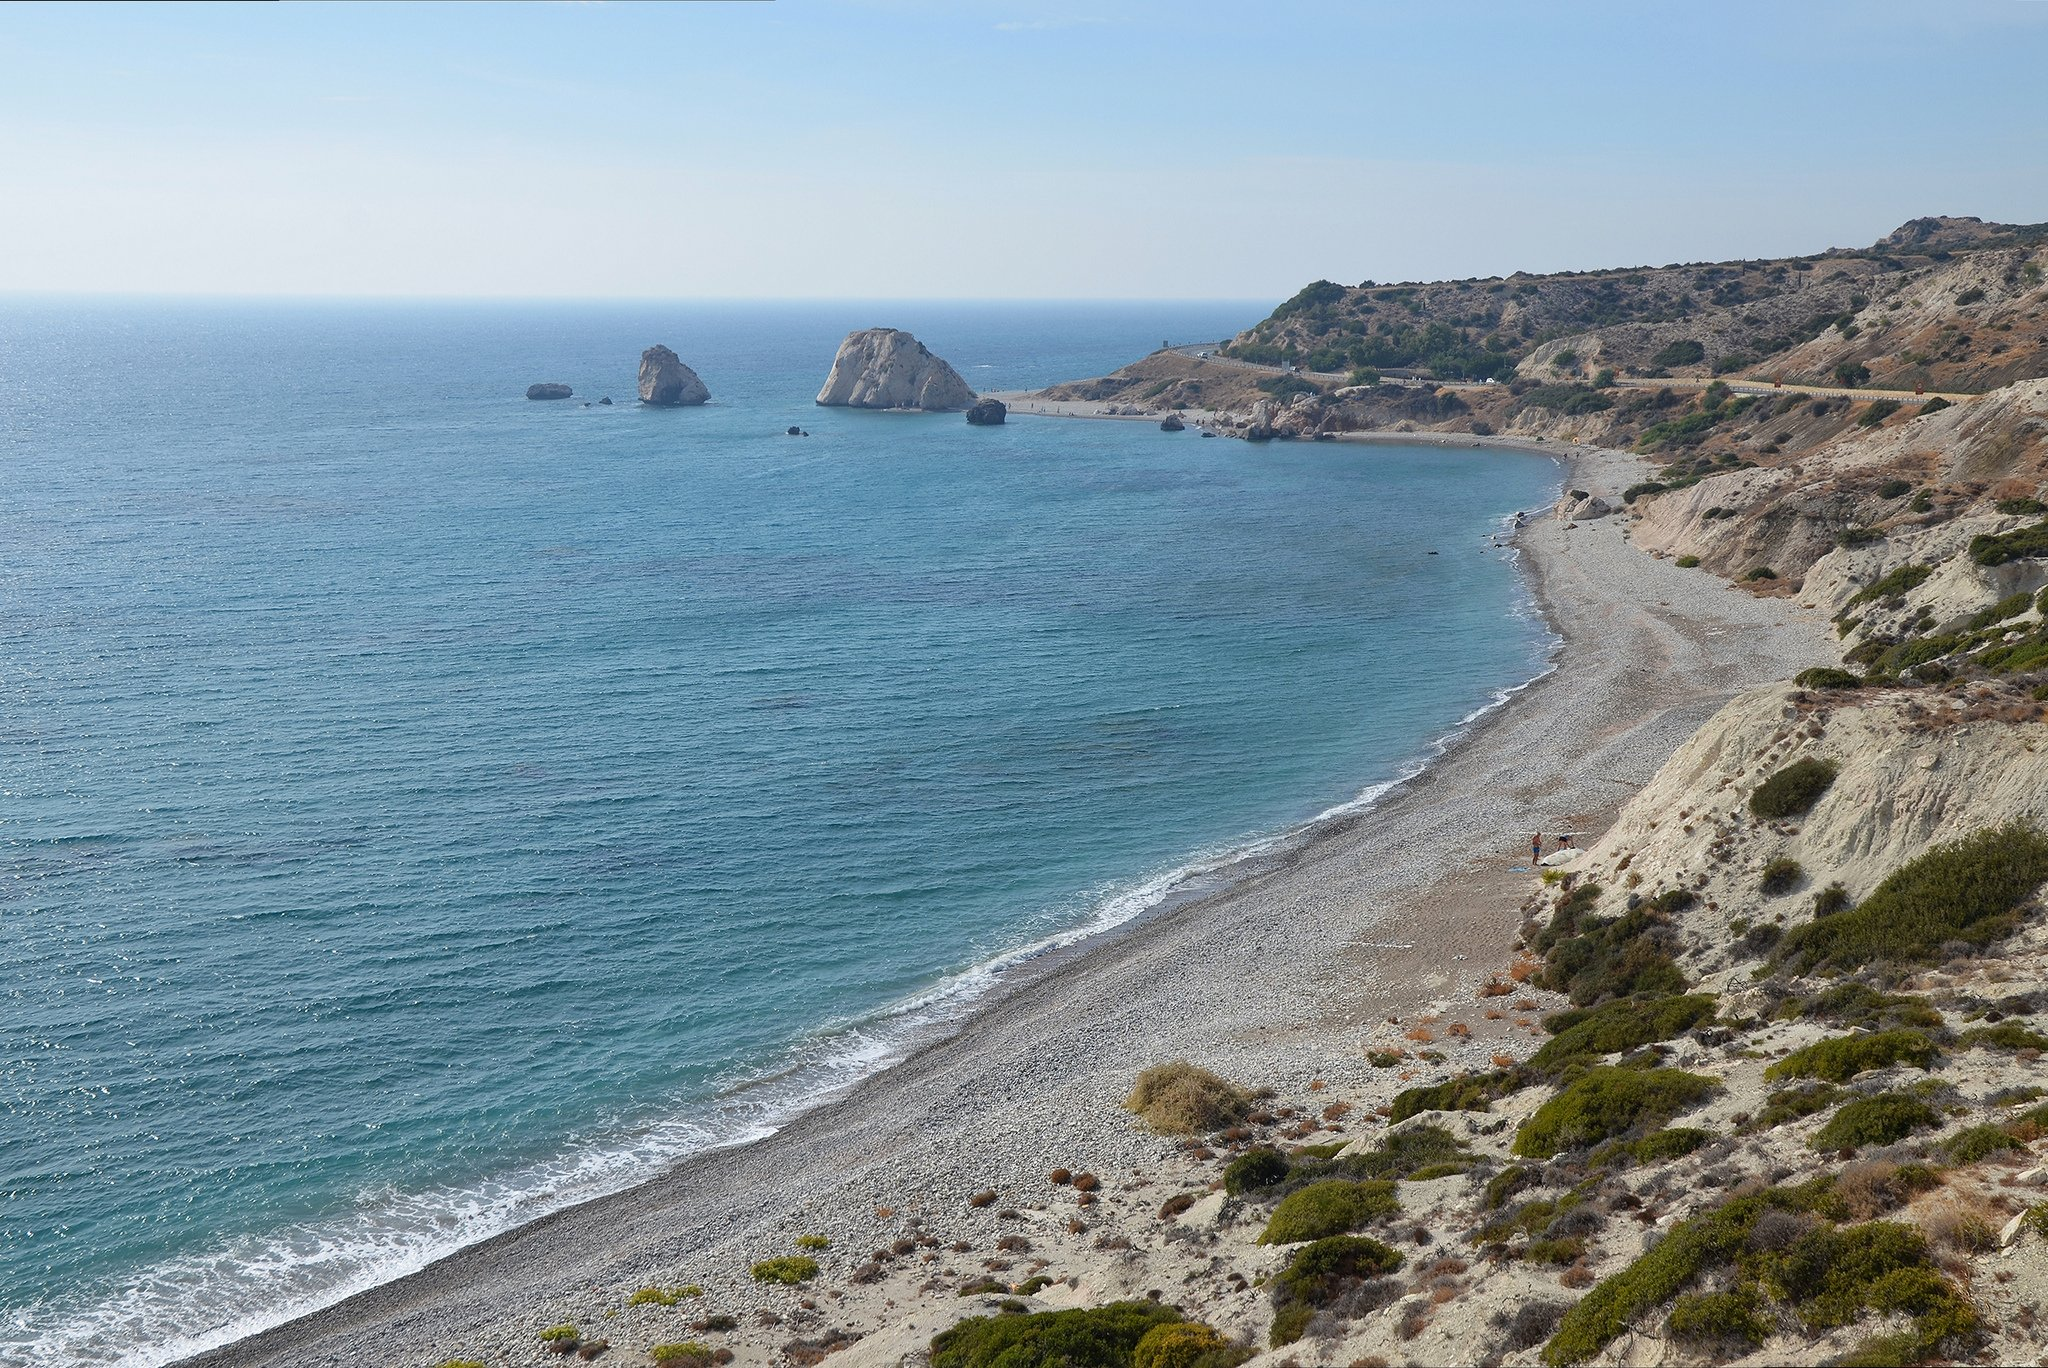 Aphrodite's Rock, the site of the birth of the goddess Aphrodite, Cyprus